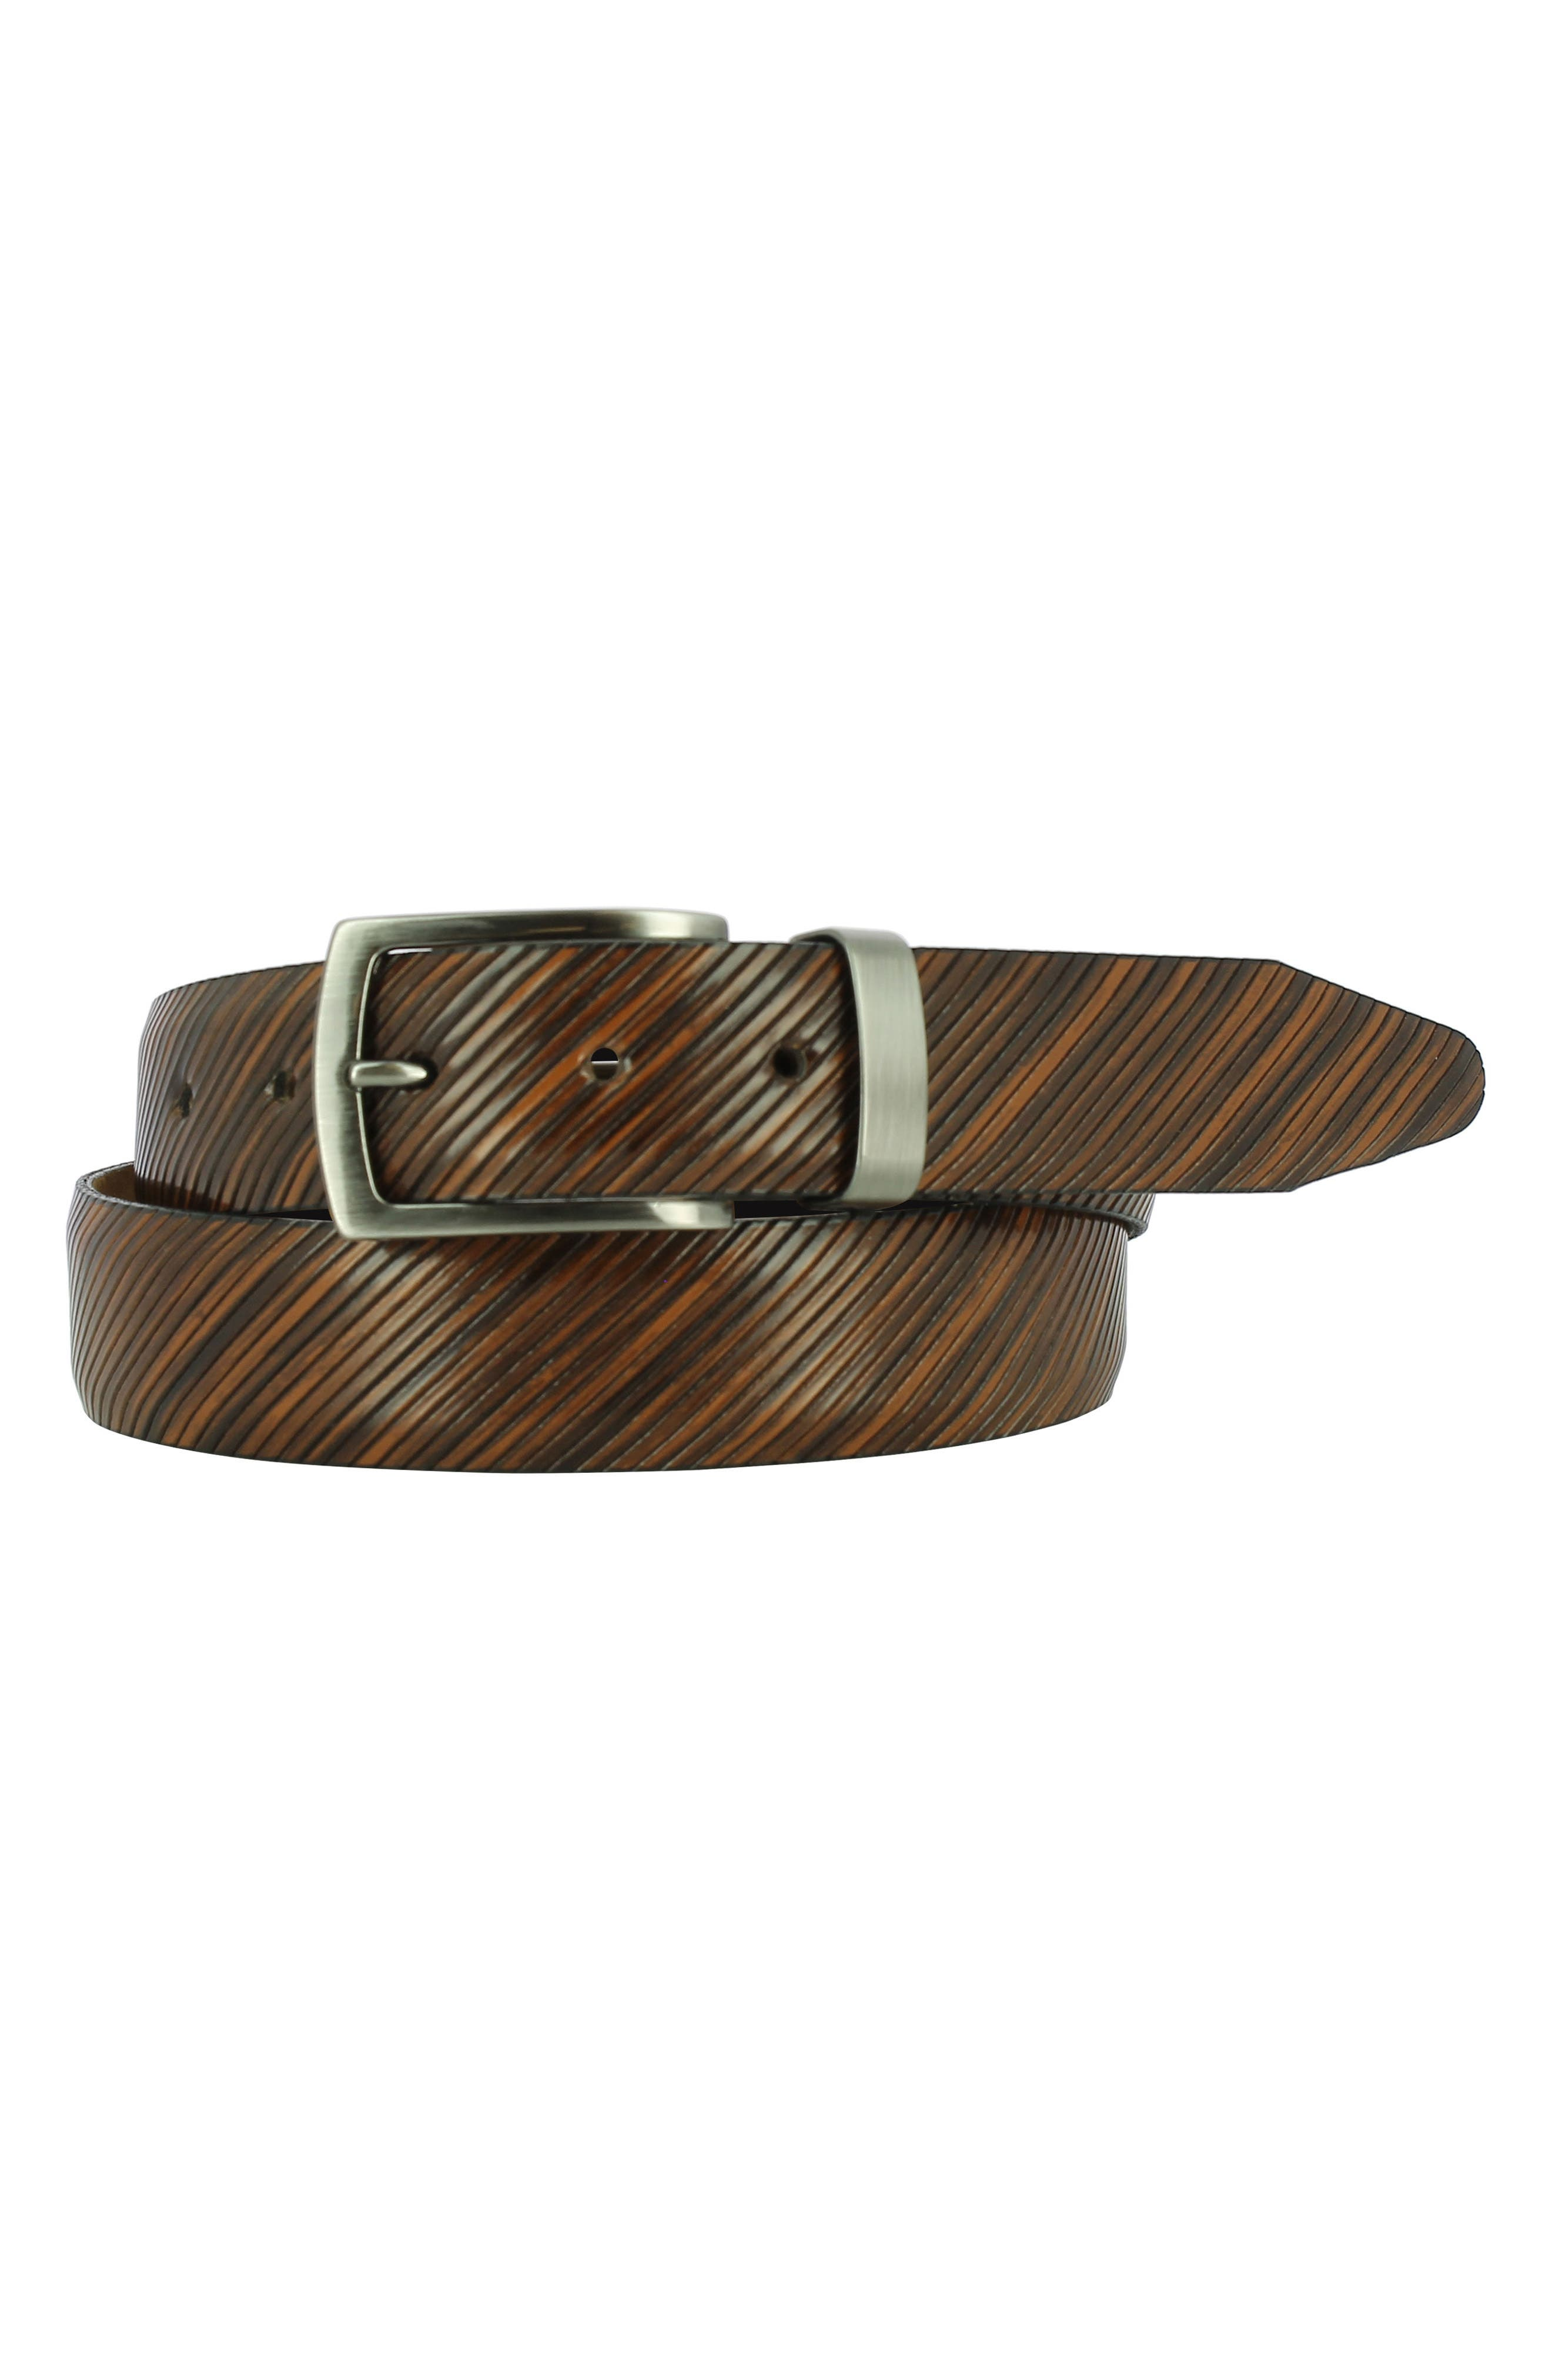 Alternate Image 1 Selected - Remo Tulliani Sylvio Leather Belt